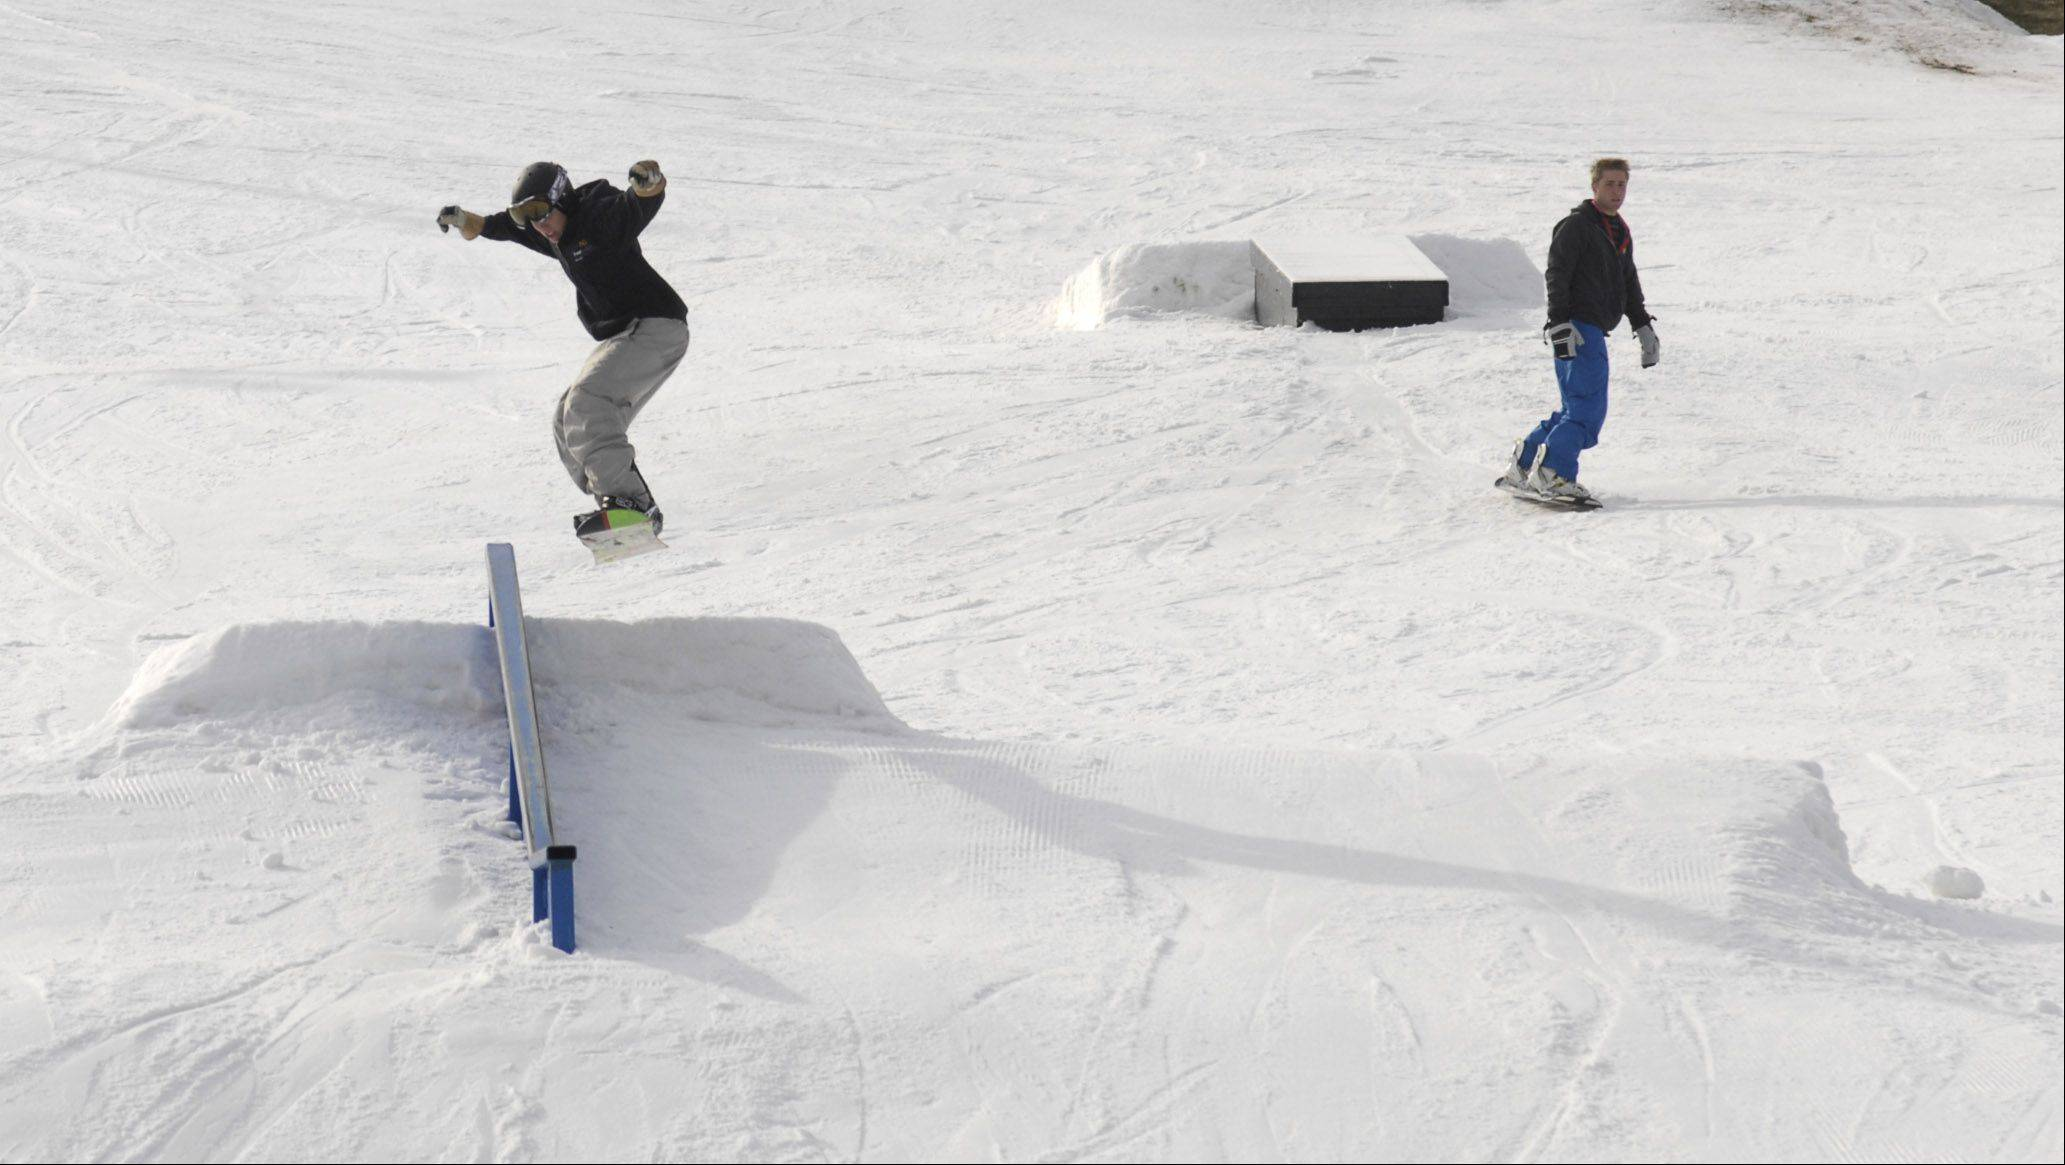 Snowboarders take to the slopes at the Four Lakes Alpine Snowsports in Lisle even with the lack of natural snow.